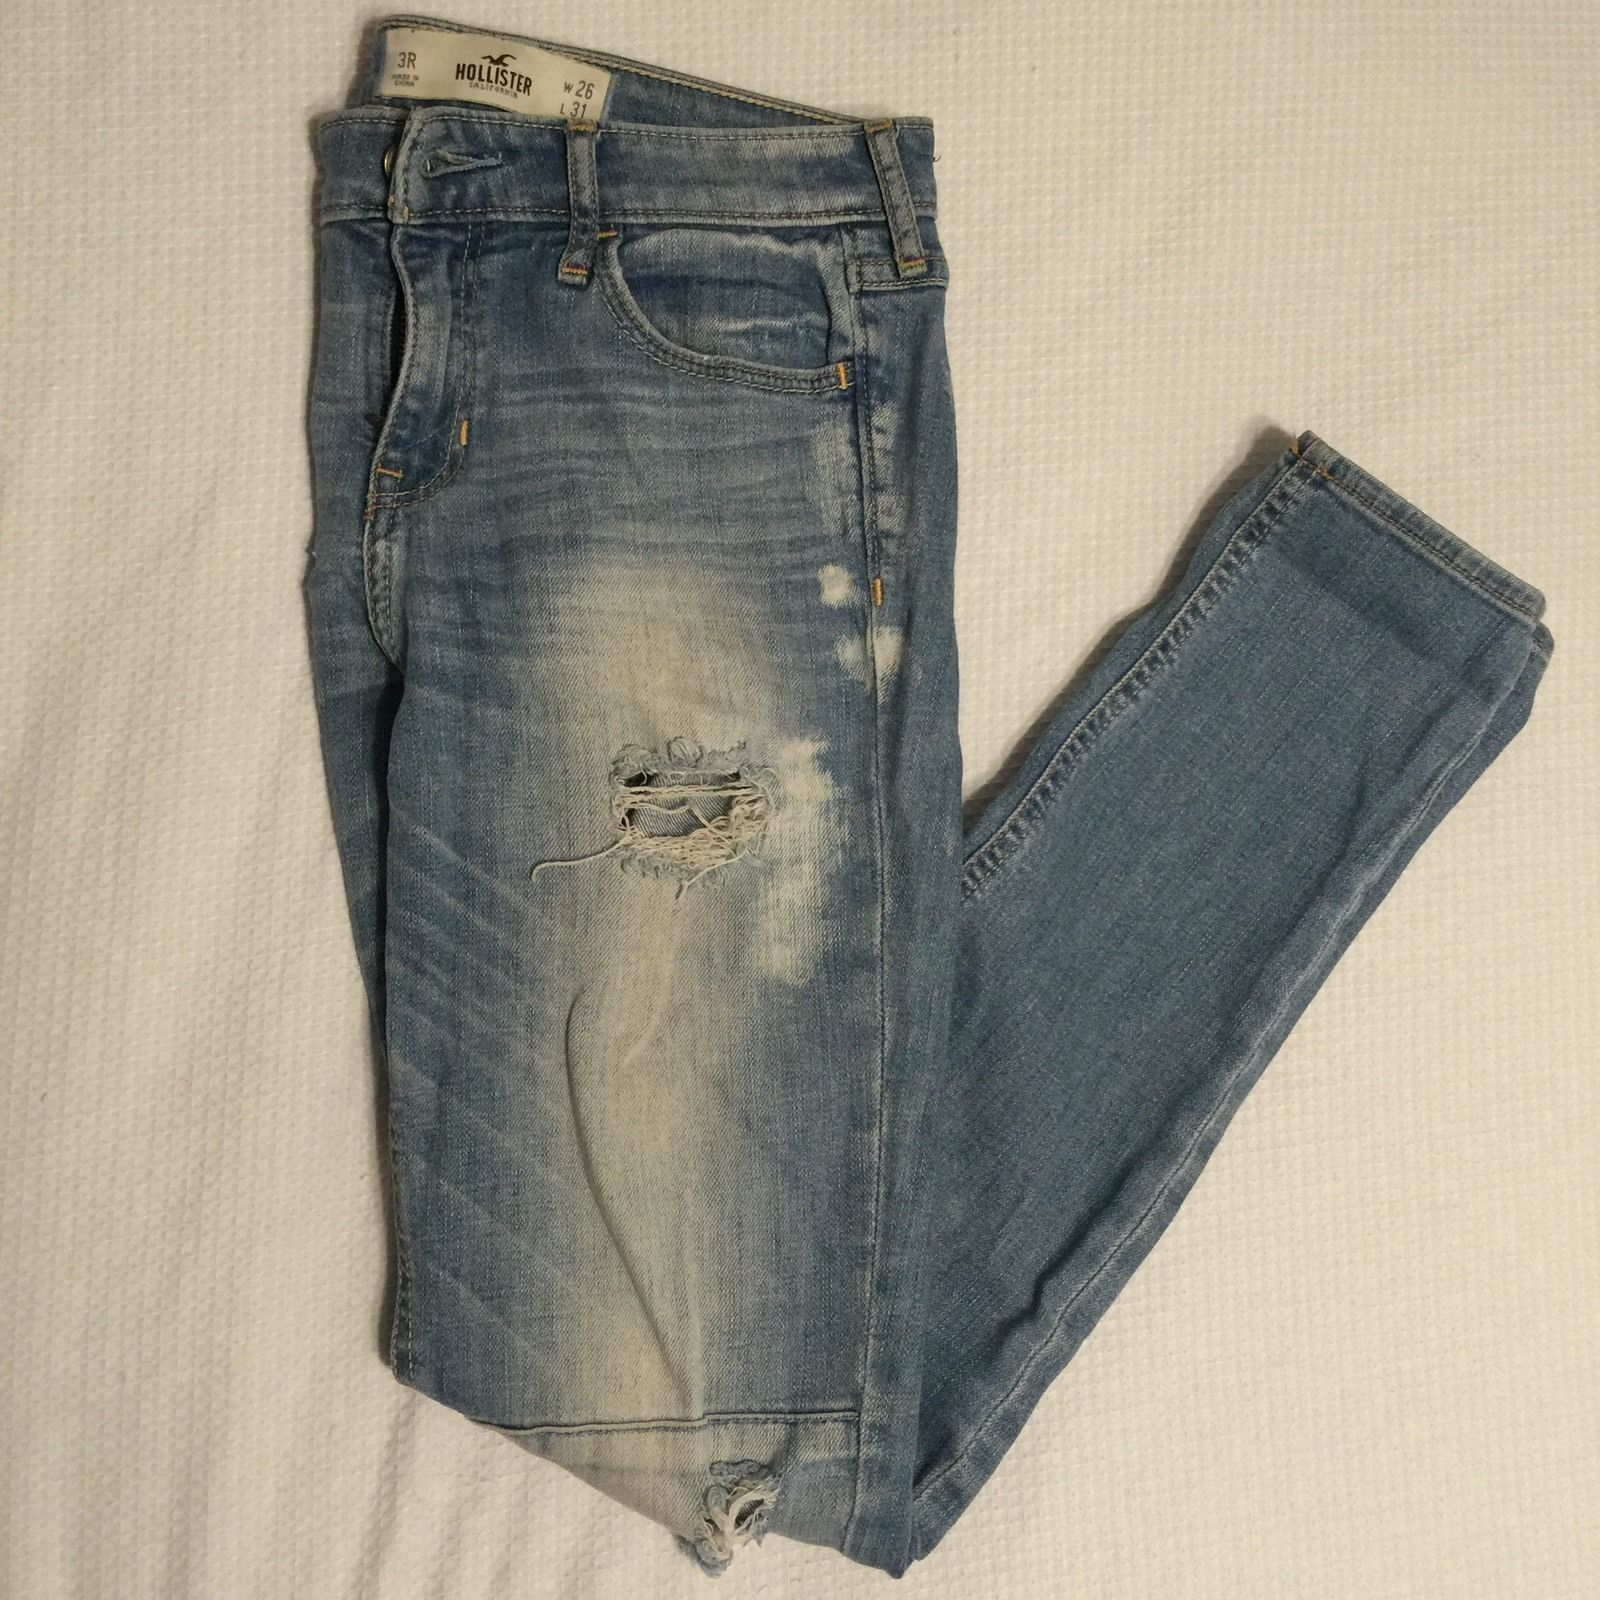 d6cd9c21 20.00 | Hollister Light Washed Ripped Jeans Size 3R W26 L31 ❤ #hollister #